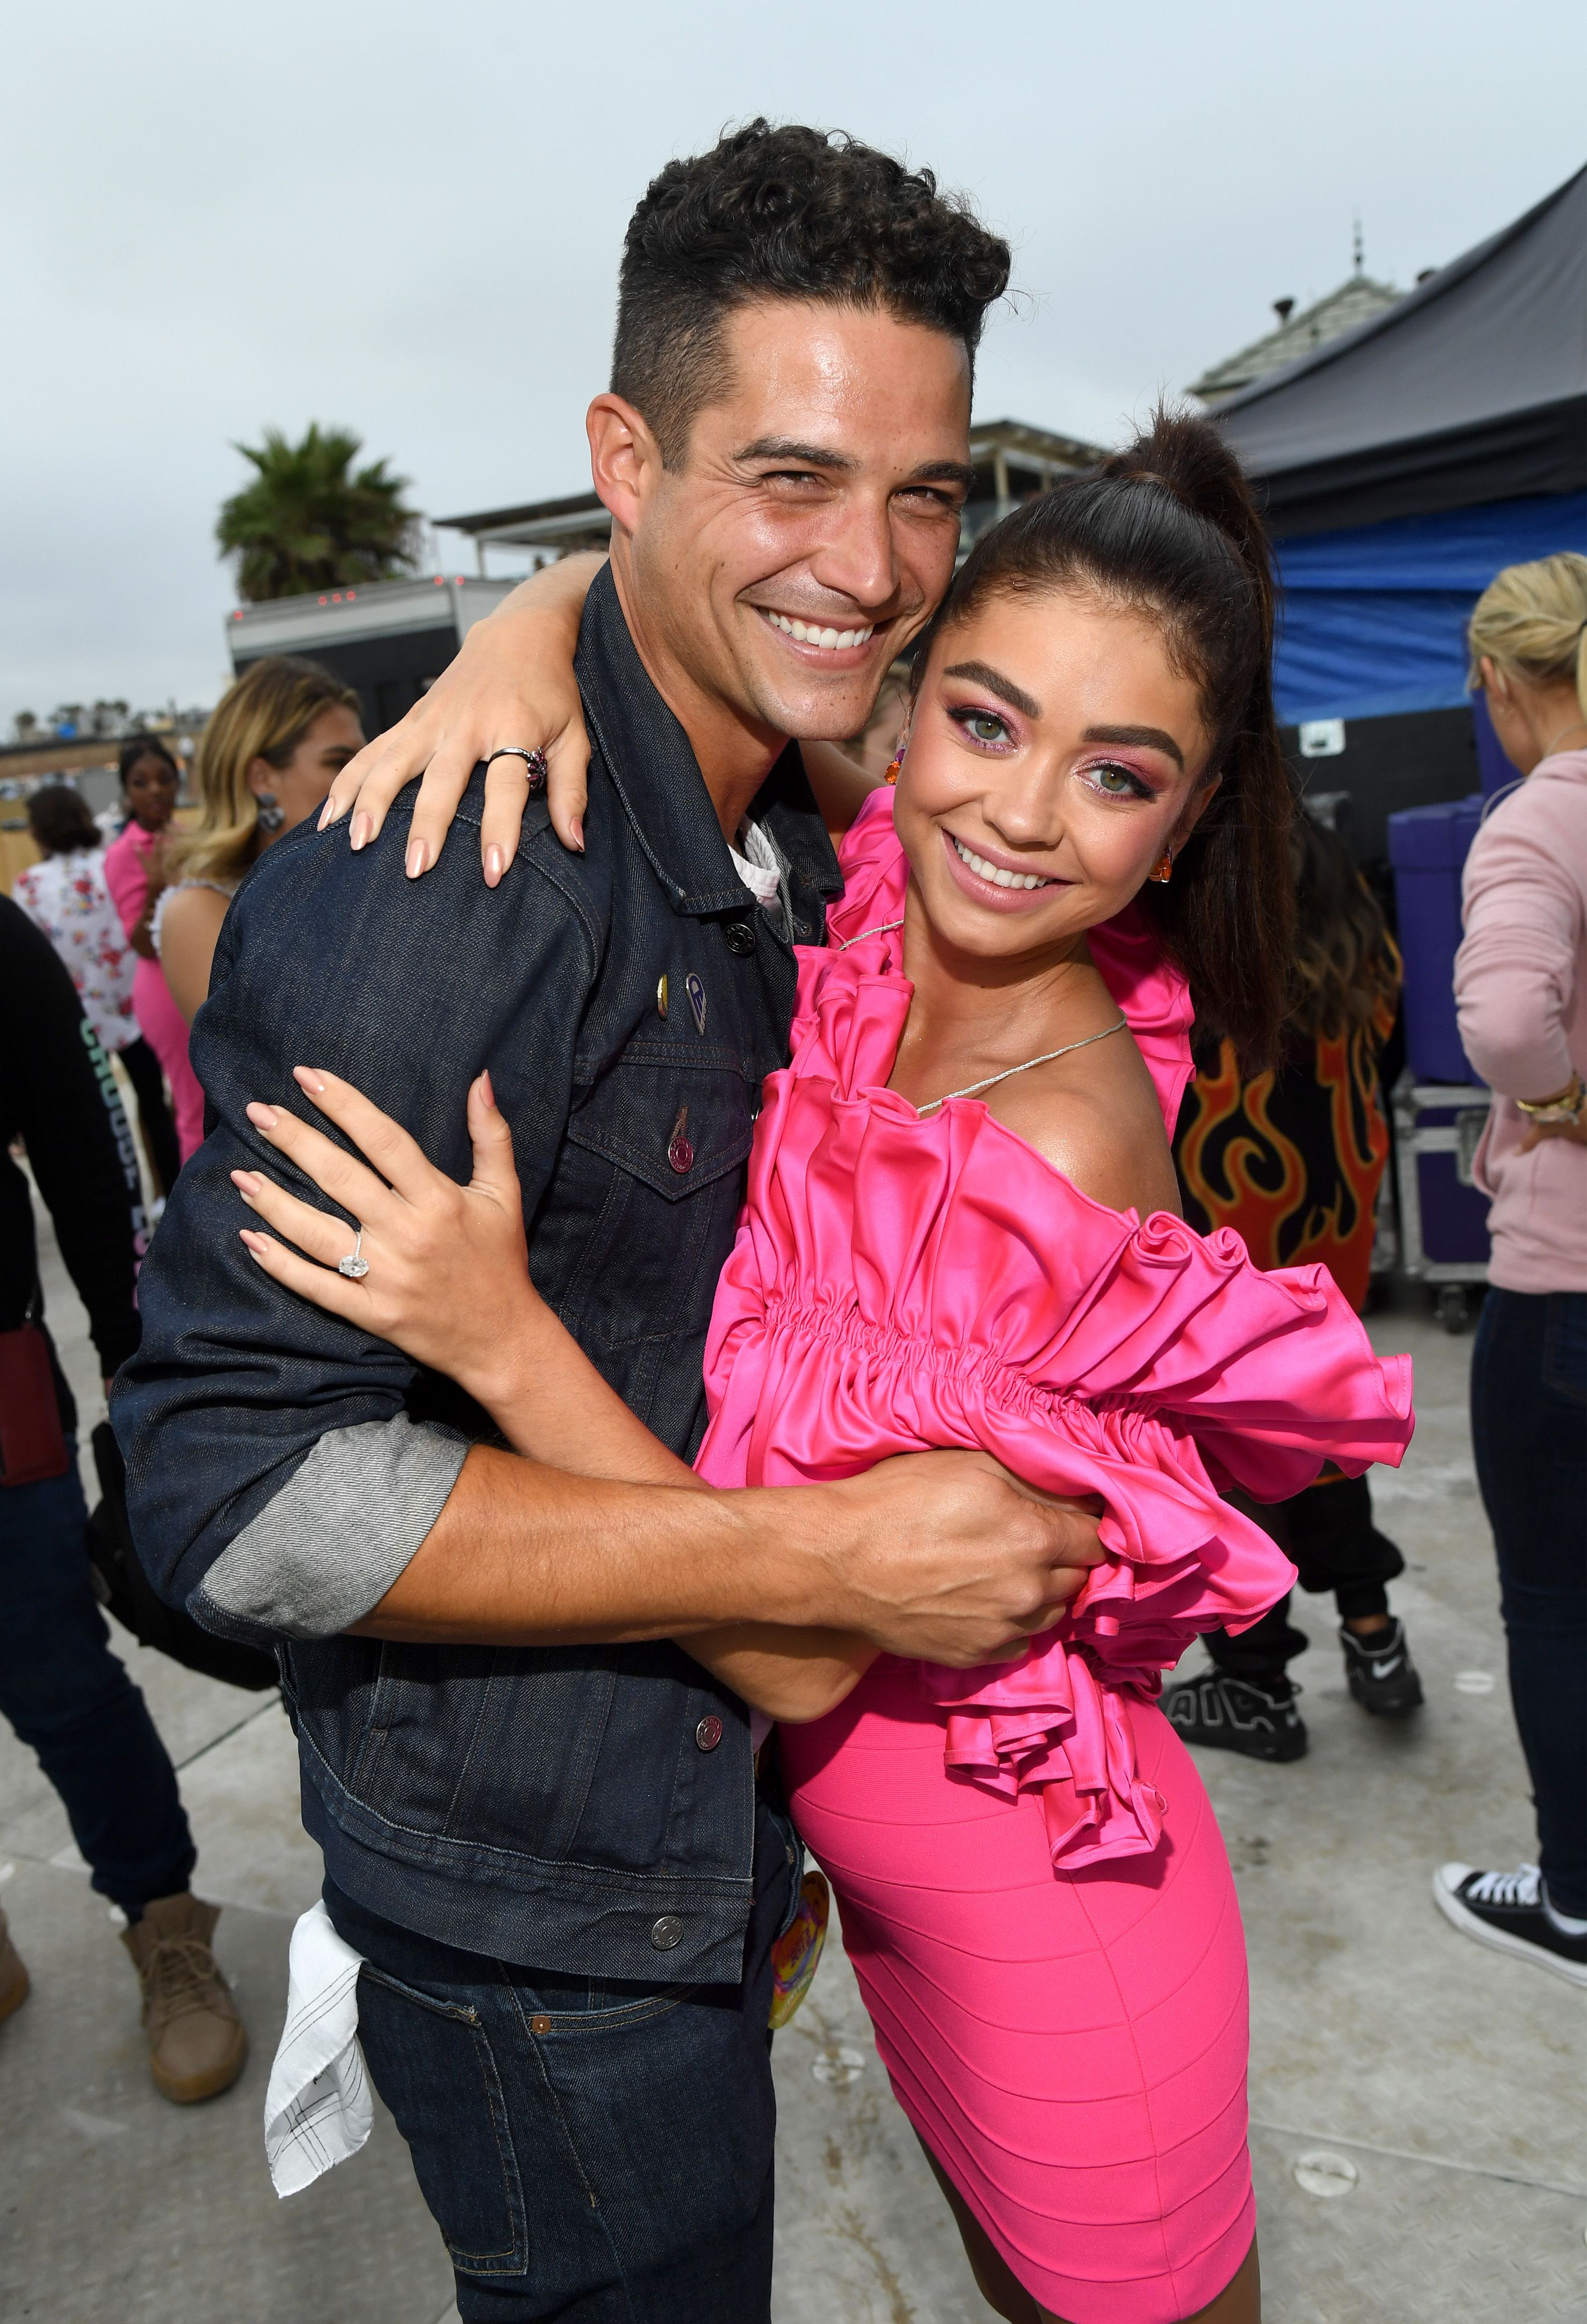 Sarah Hyland And Fiancé Wells Adams Are All About The PDA